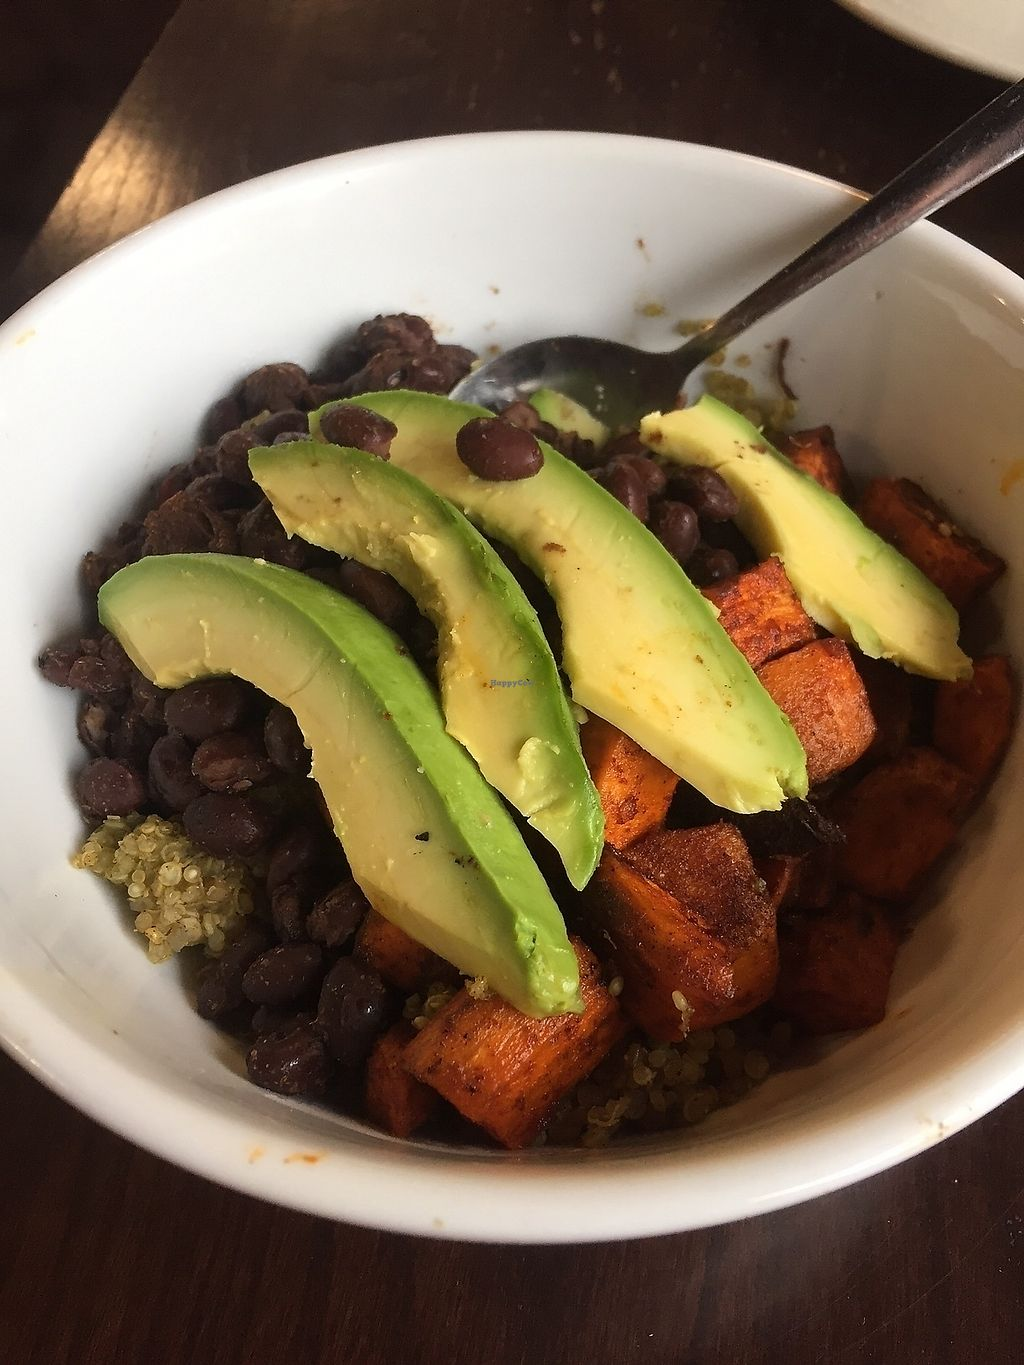 """Photo of The Farm Concessions and Café  by <a href=""""/members/profile/NorthernStar"""">NorthernStar</a> <br/>Black bean, sweet potato, green quinoa bowl <br/> September 16, 2017  - <a href='/contact/abuse/image/51695/305145'>Report</a>"""